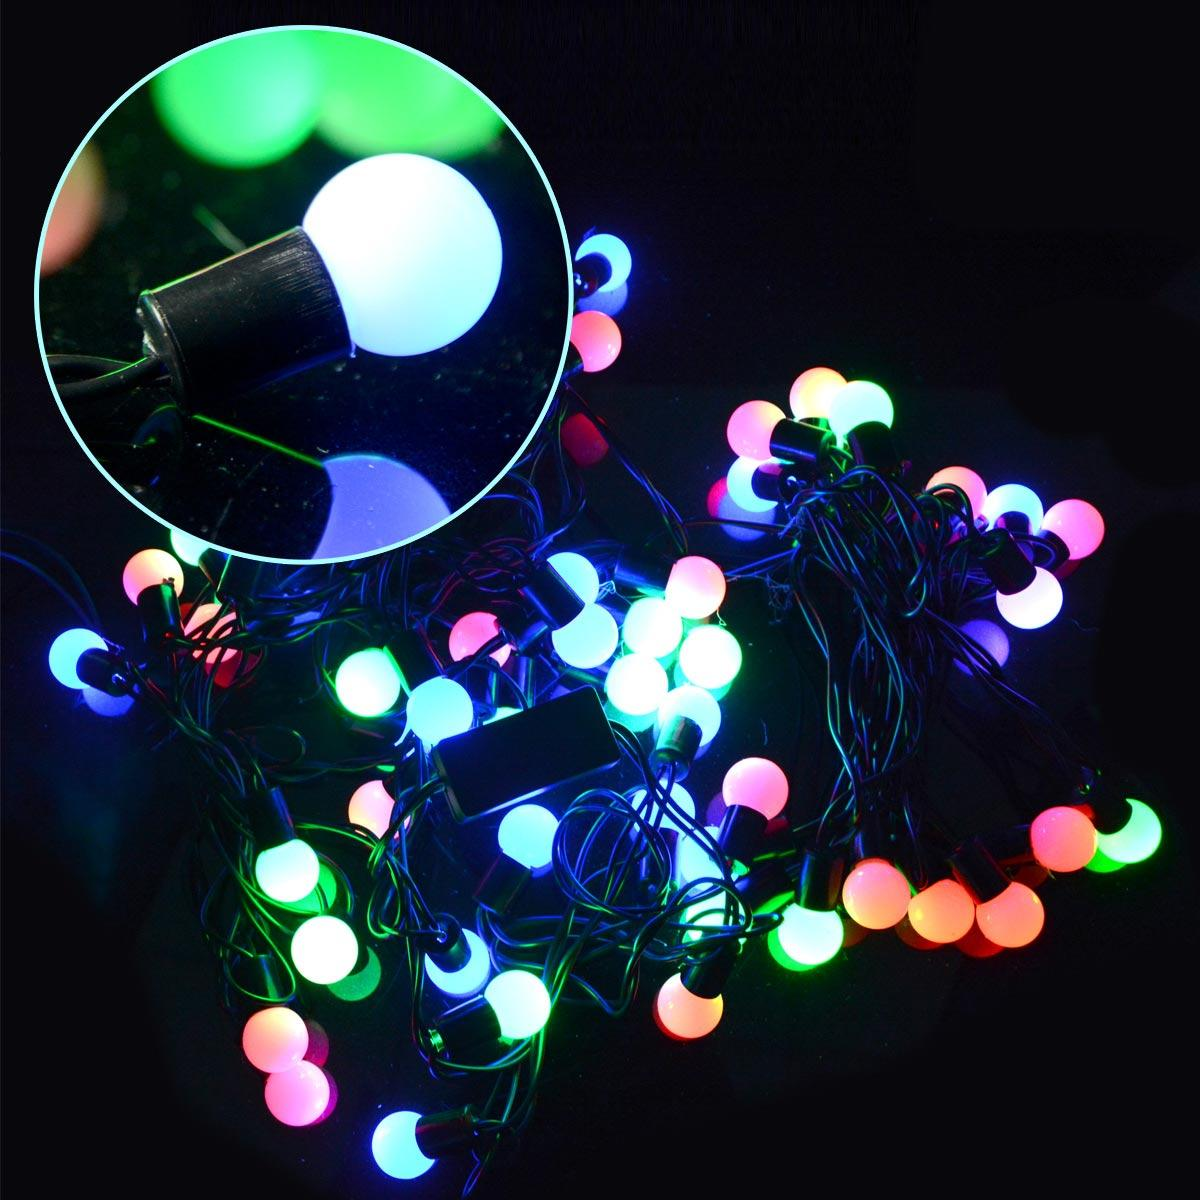 Color Changing Christmas Lights.New Christmas Lights Led Light String Color Changing 50 Led Rgb Ball 21 Feet String Christmas Fairy Xmas Light Christmas Party Decoration String Of